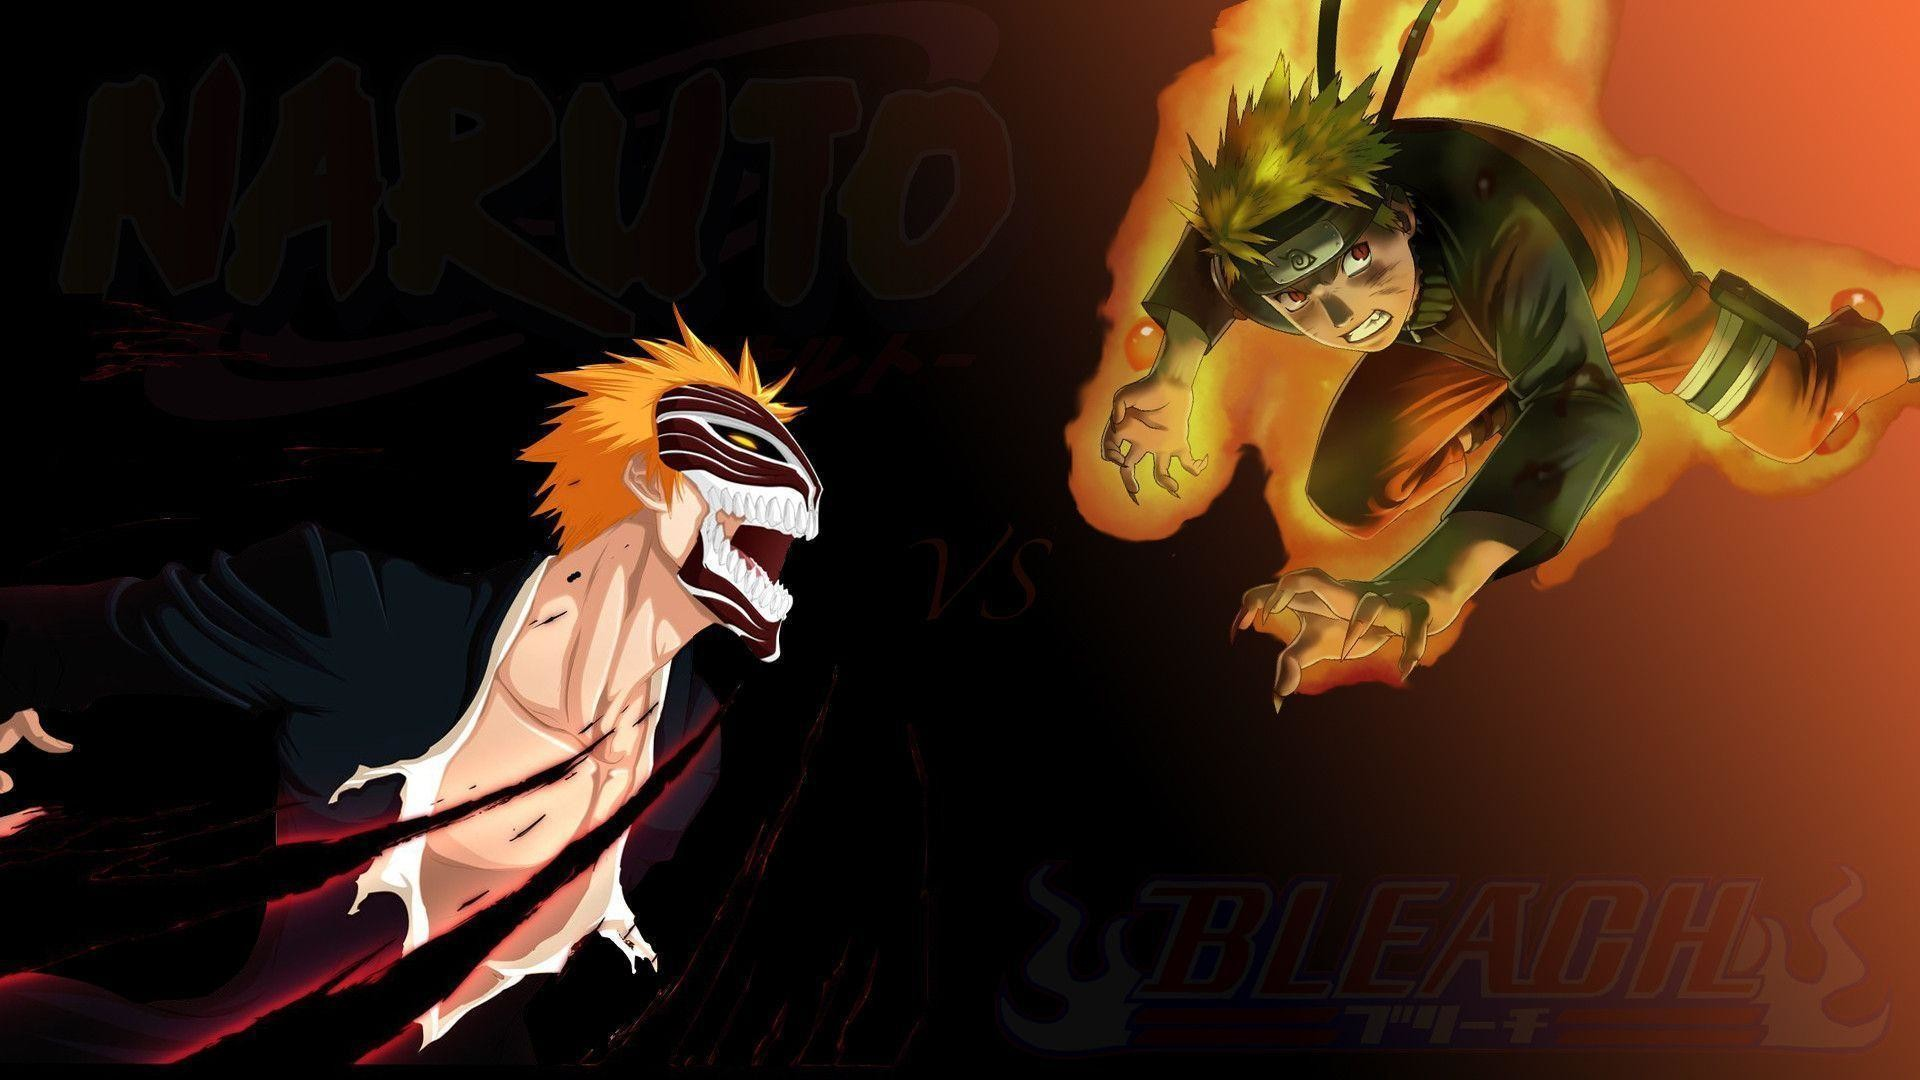 1920x1080 Naruto VS Bleach Wallpaper HD by Finlux on DeviantArt